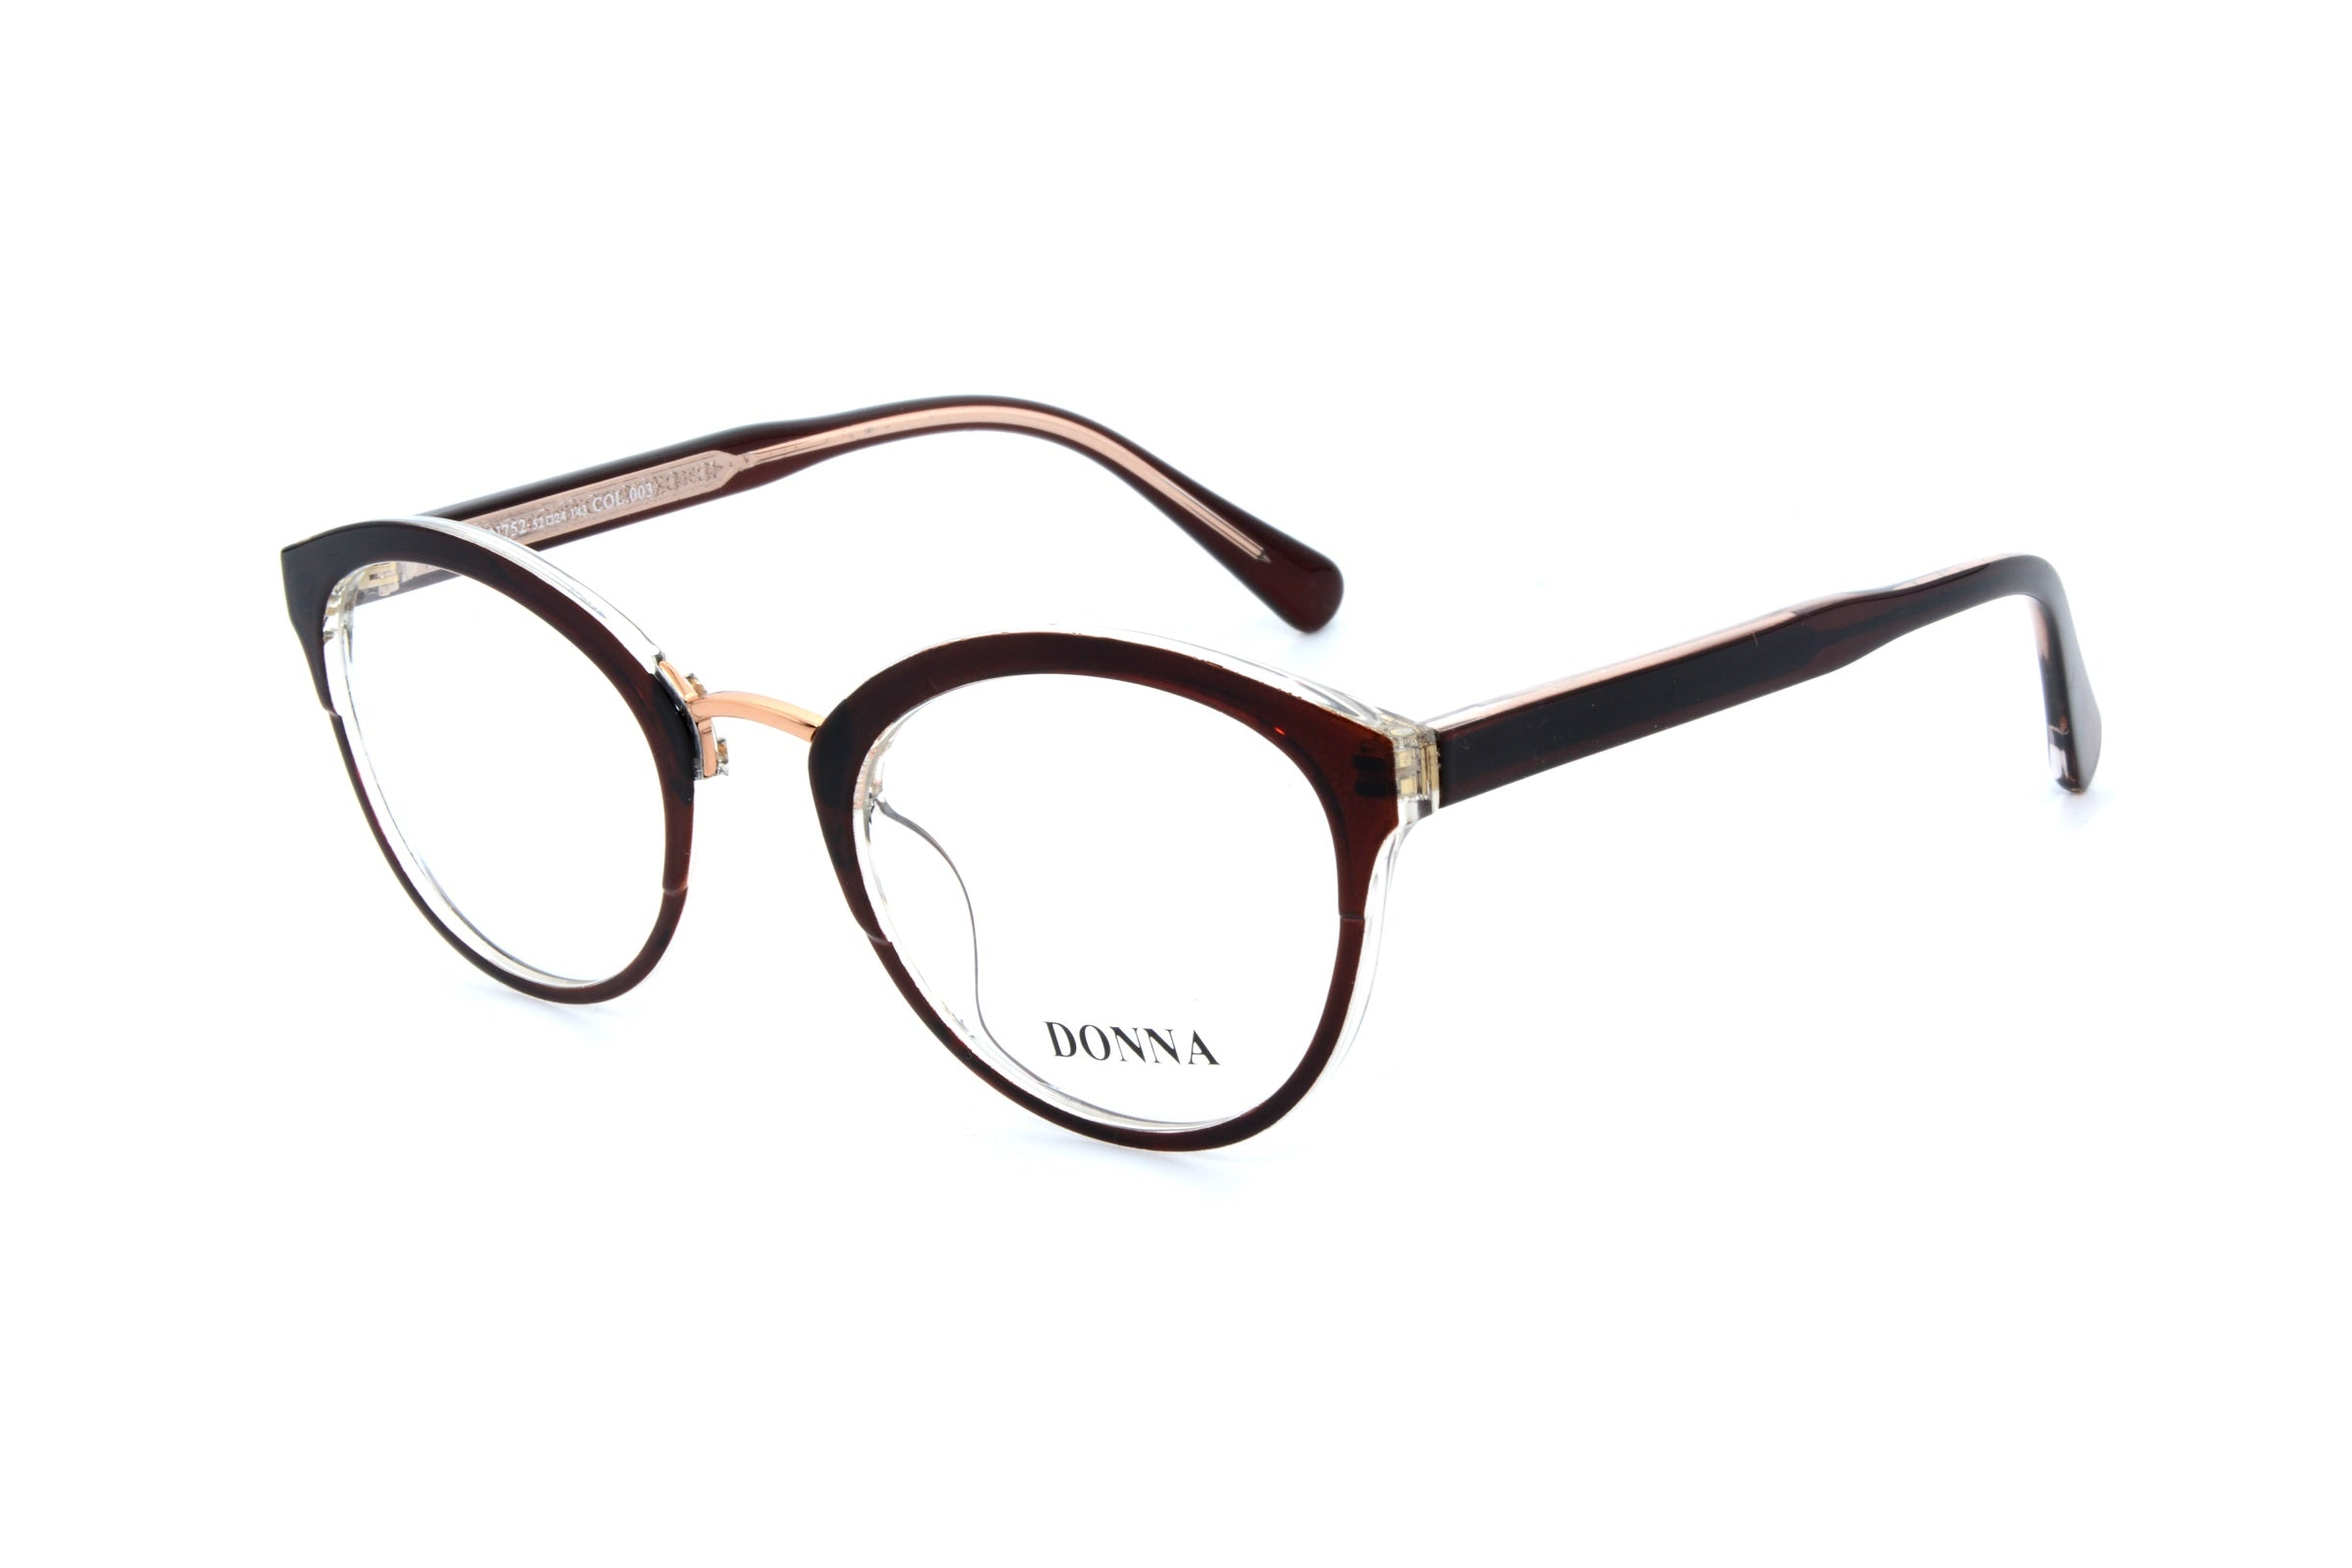 Donna eyewear 752, C003 - Optics Trading